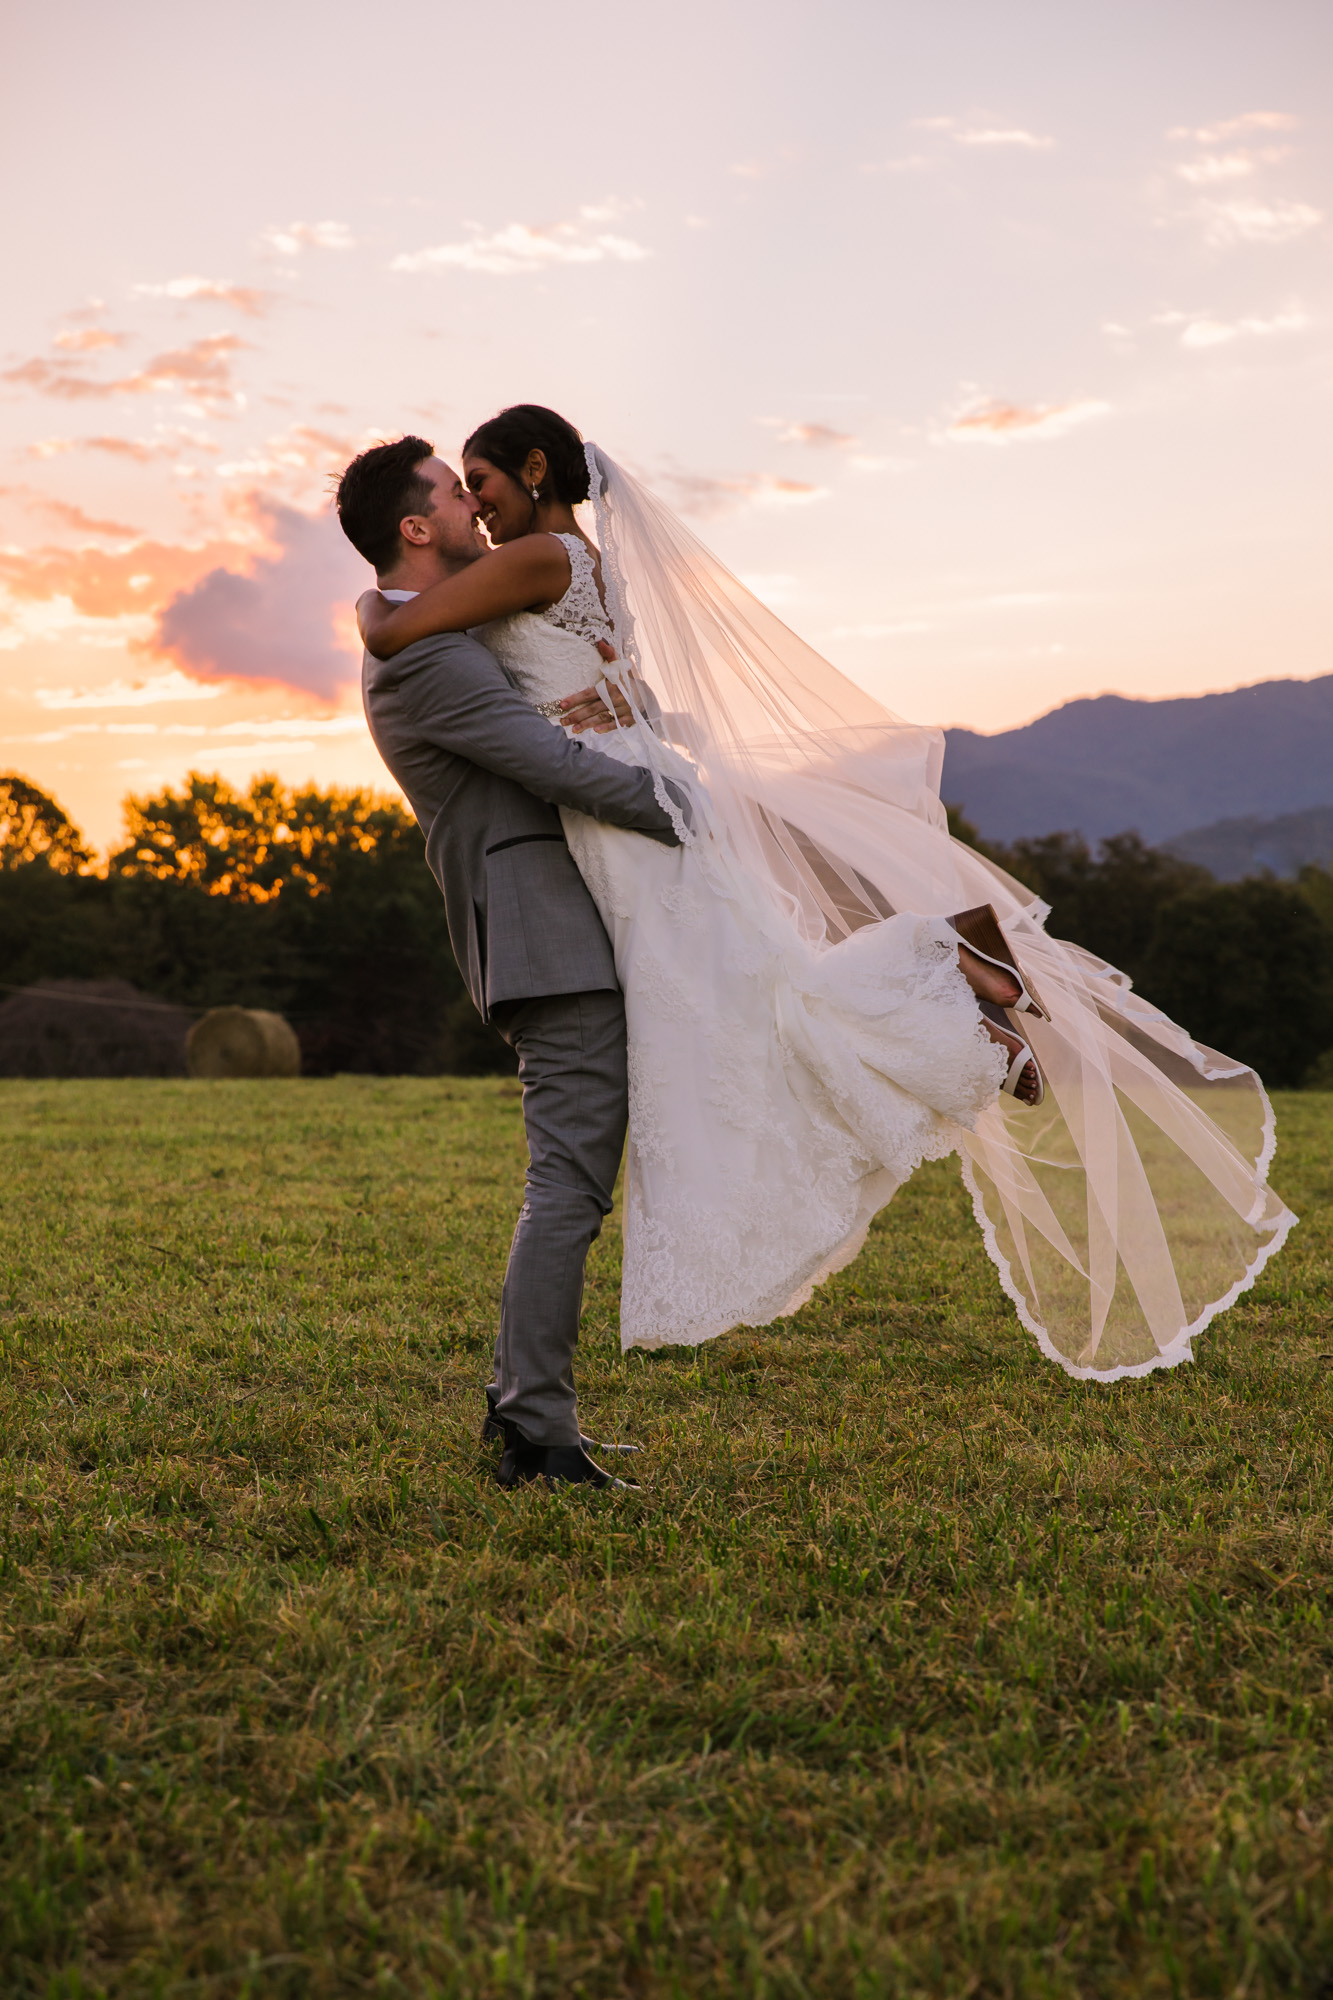 Waynesville NC Wedding Photography | Groom Lifting Bride in the Air at Sunset